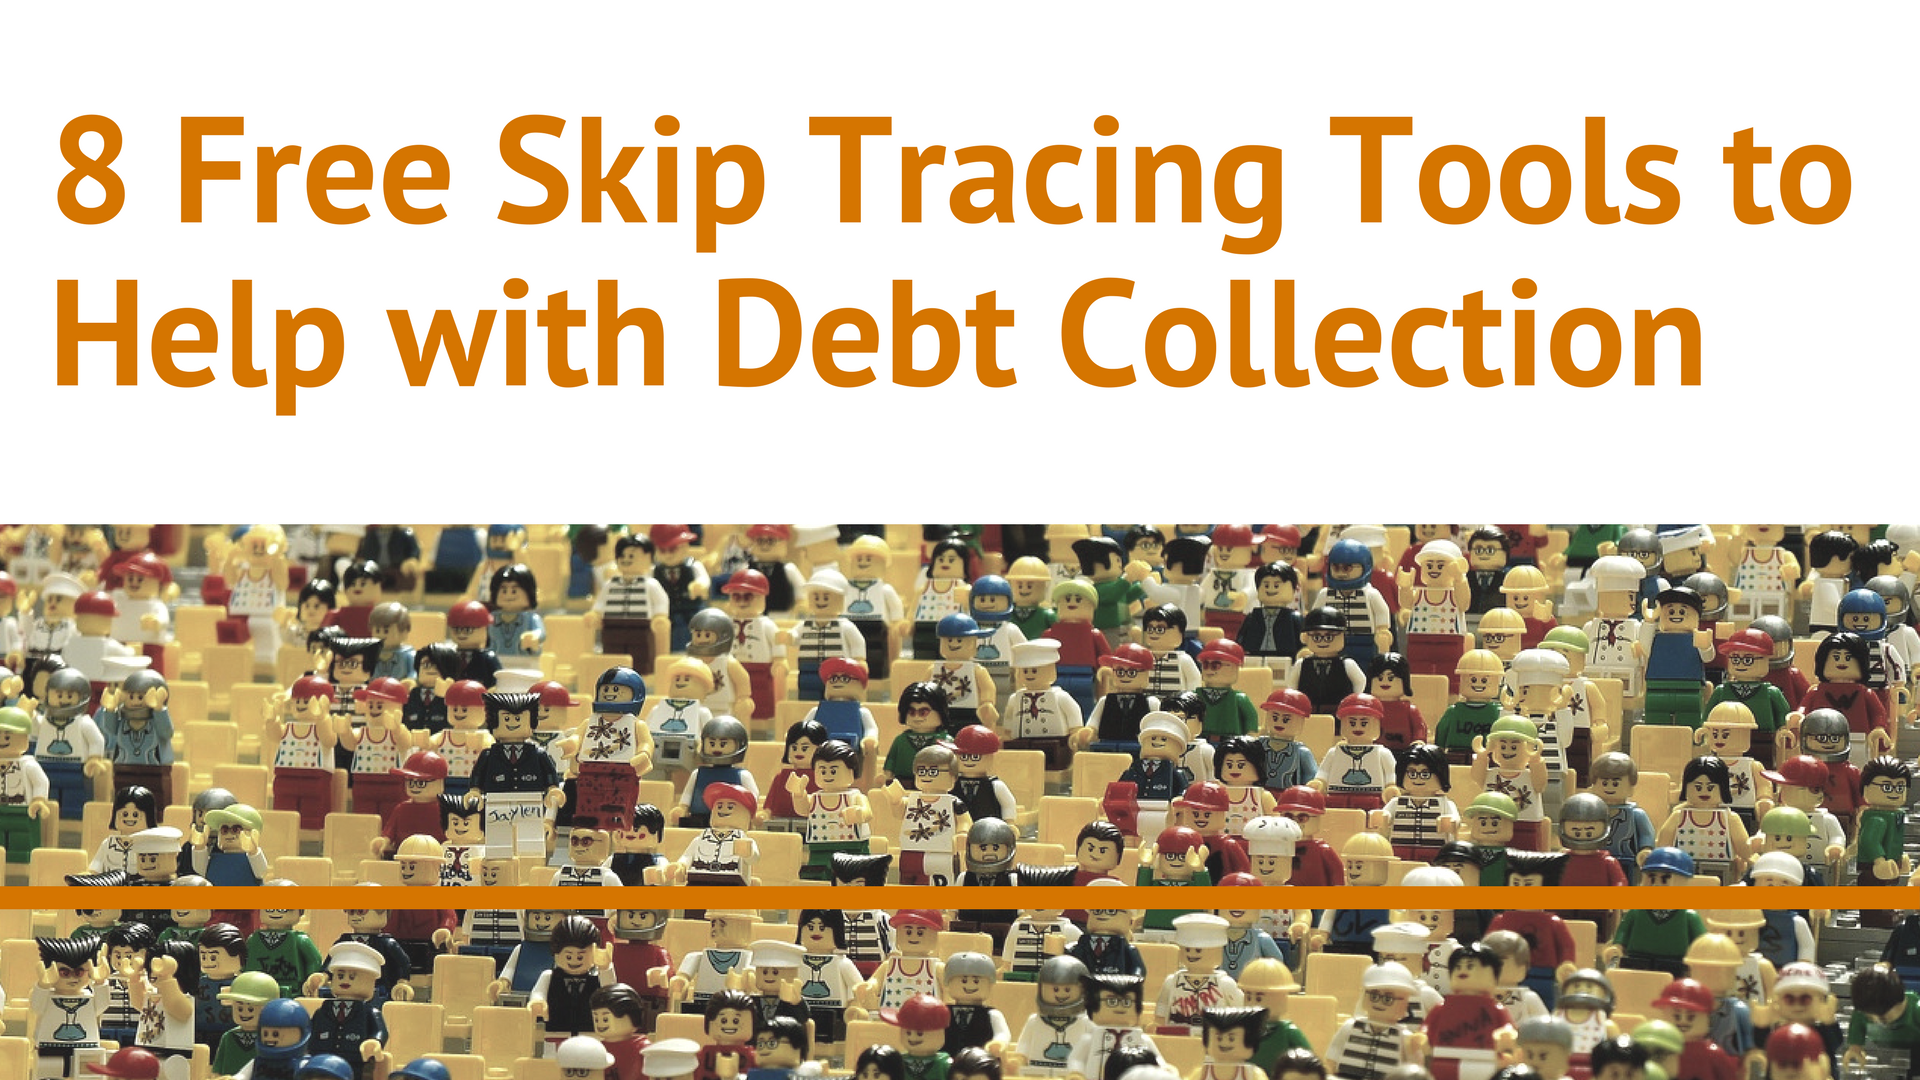 Debt Collection Agency >> 8 Free Skip Tracing Tools to Help with Debt Collection - ADC Legal ADC Legal